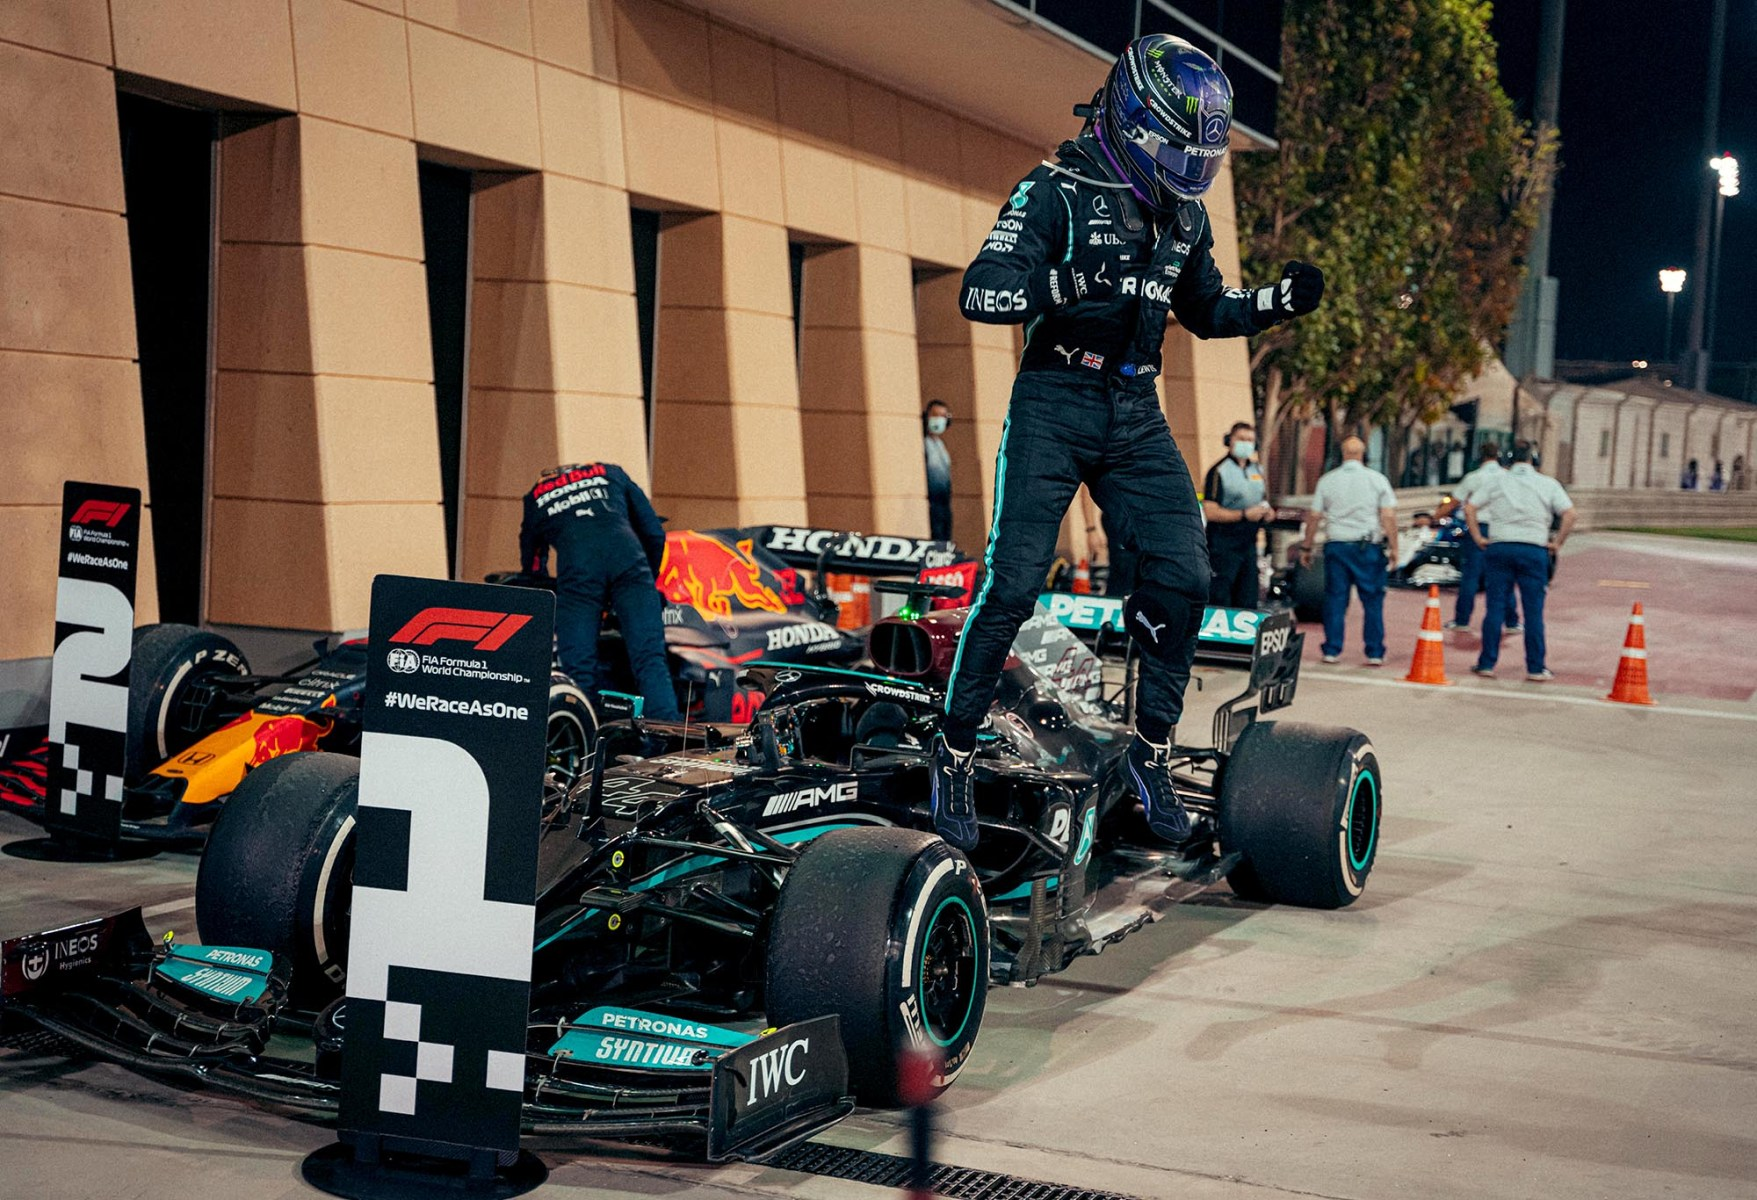 Lewis Hamilton leaps from his car